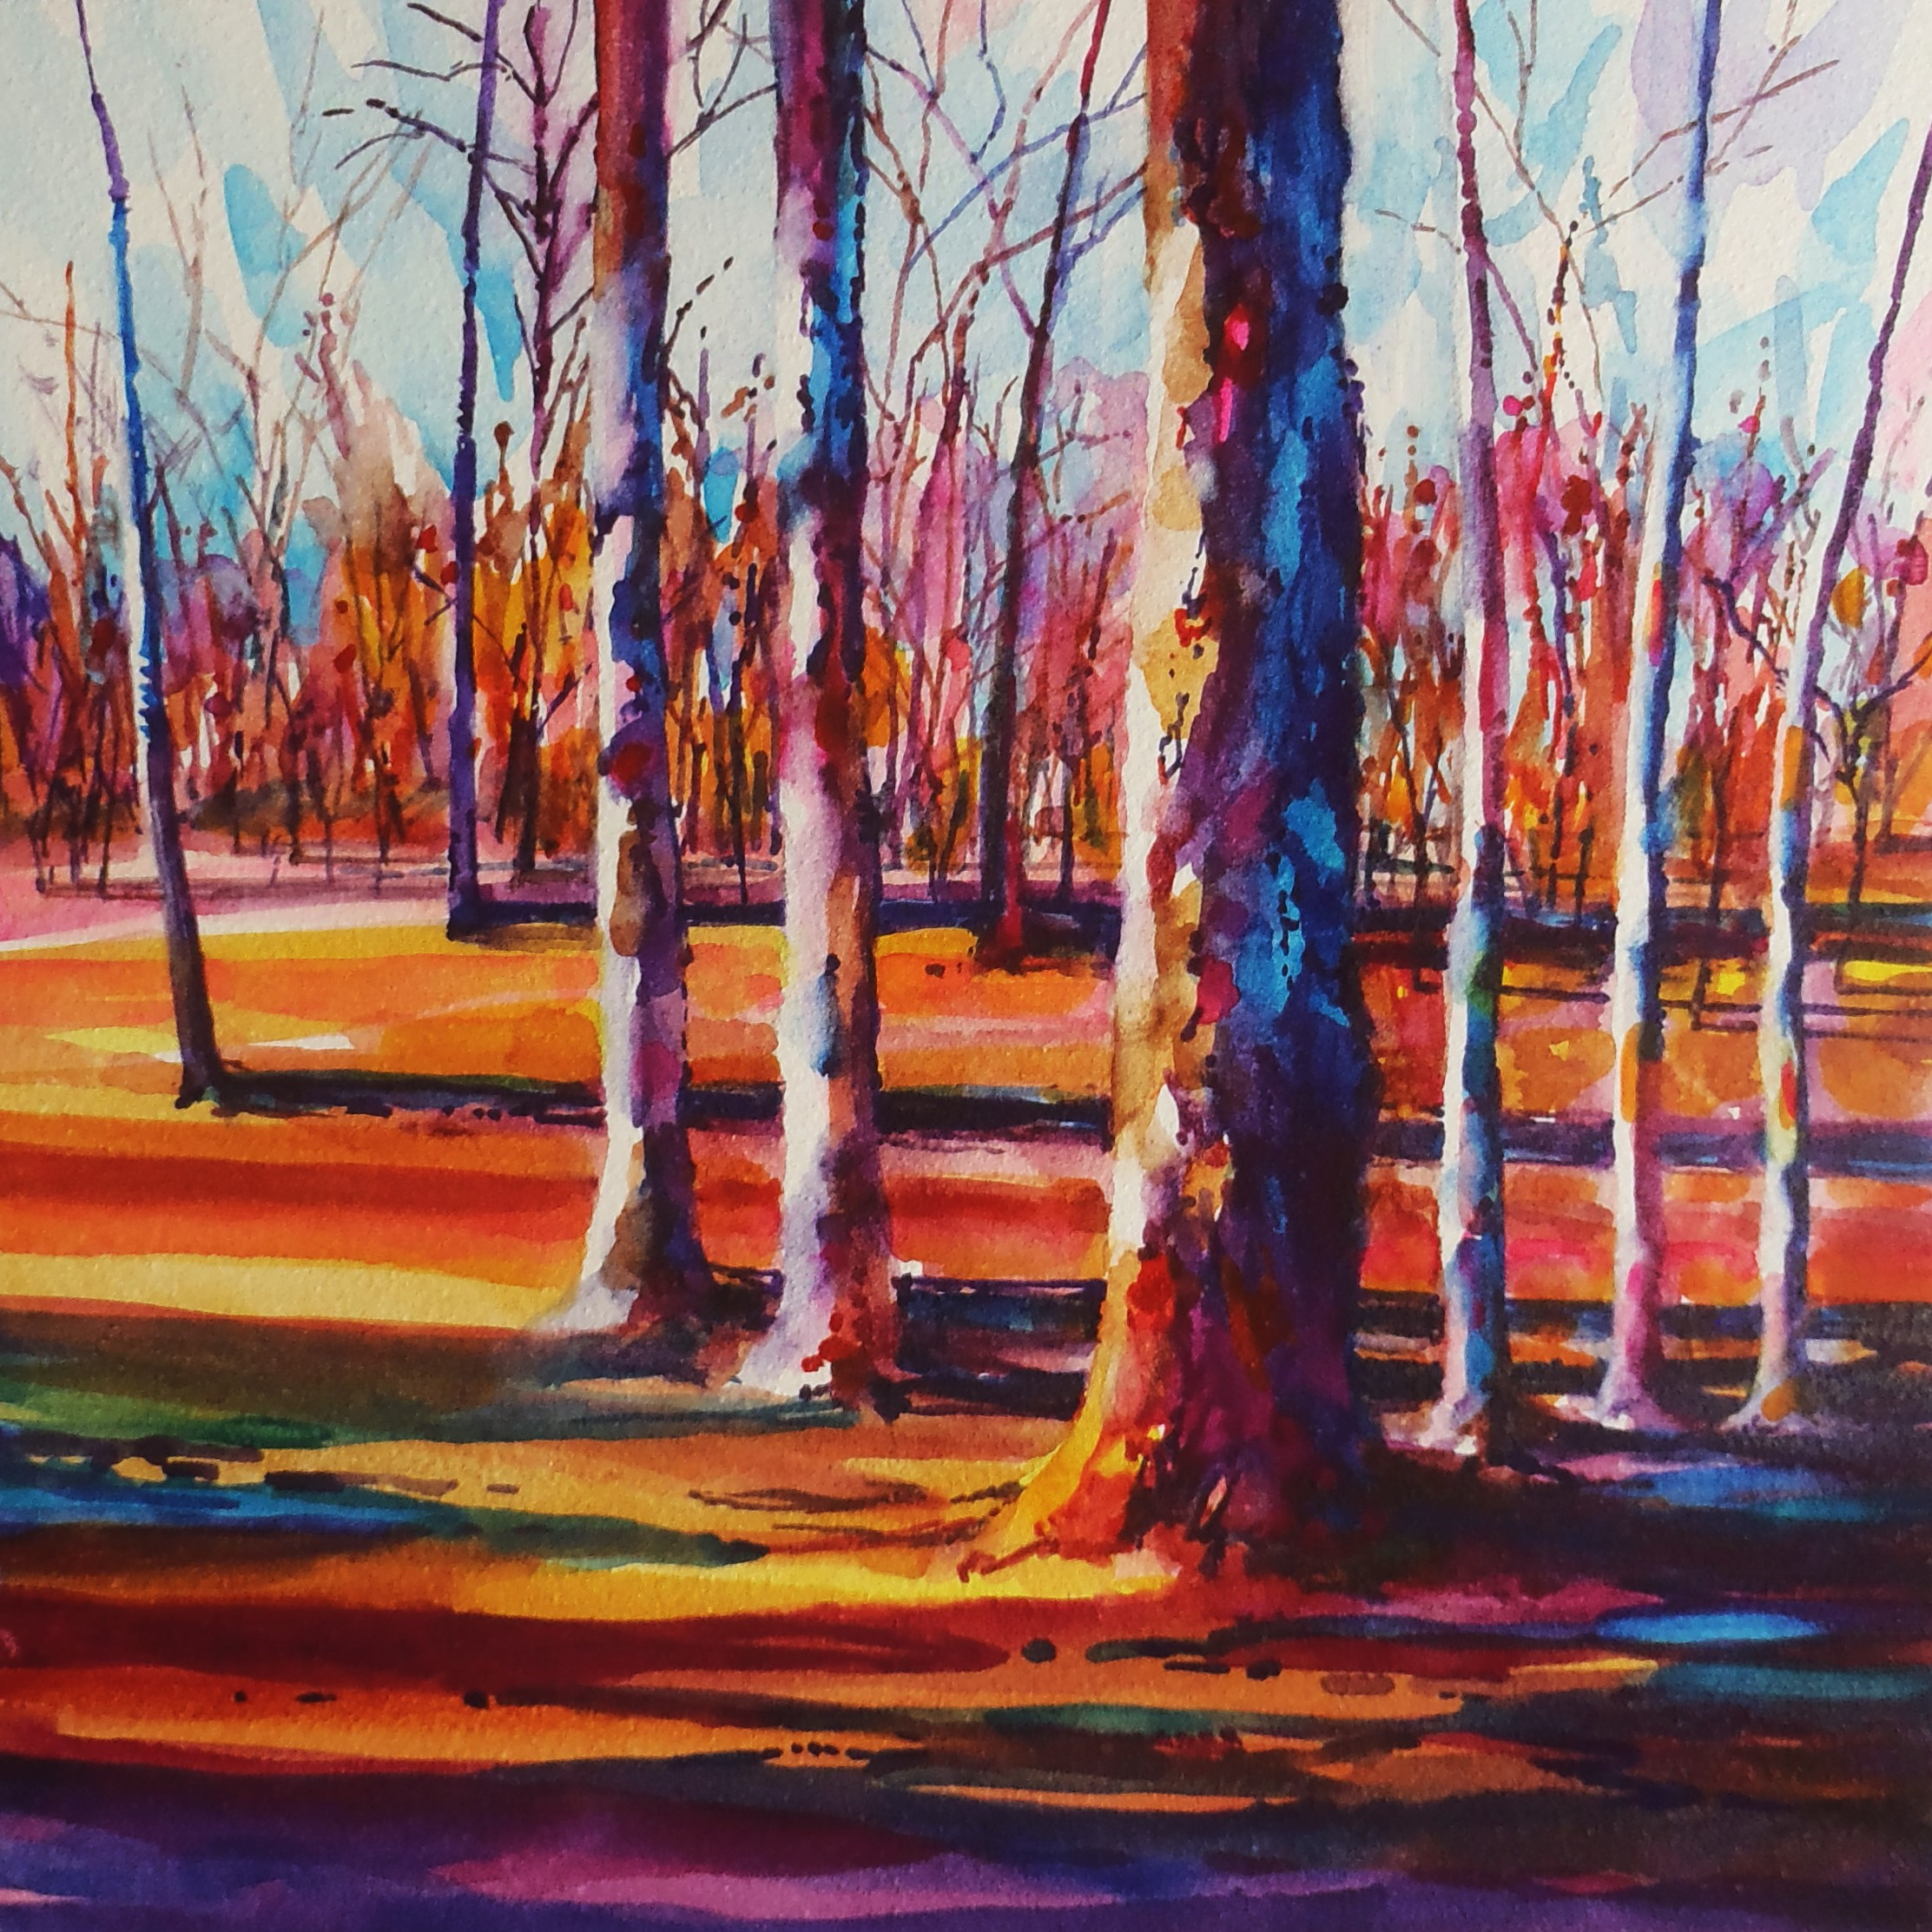 Brenda Hounshell    Harrisonburg, VA    Water Media     Member Since December 2017      Website    Brenda Hounshell is a water media artist who resides in Harrisonburg, Virginia. She graduated from James Madison University with a Bachelor of Science degree in Art. Her concentration of study was in drawing and design. In recent years she has adopted watercolor as her primary medium. Brenda is a signature member of the Transparent Watercolor Society of America, the Baltimore Watercolor Society and the Virginia Watercolor Society.